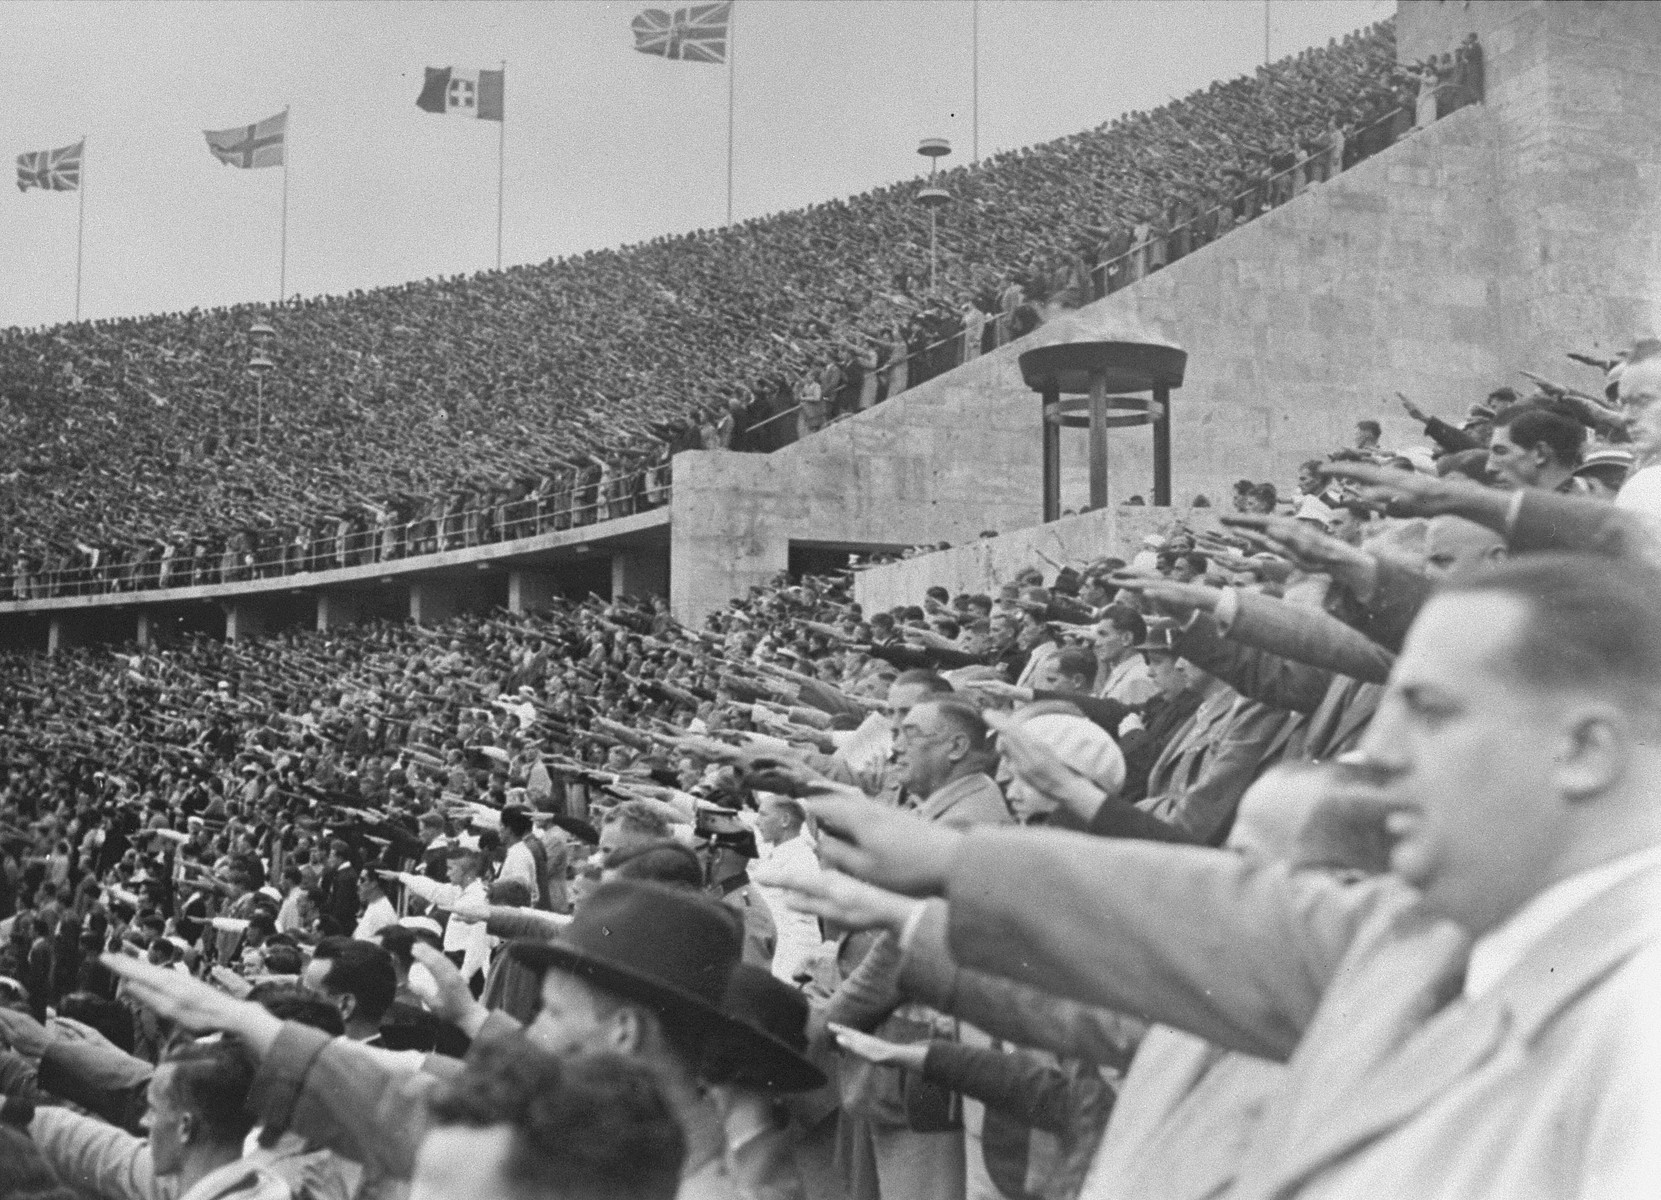 German citizens saluting Adolf Hitler at the opening of the 11th Olympiad in Berlin.  [ALSO HAVE OVERSIZED PRINT]